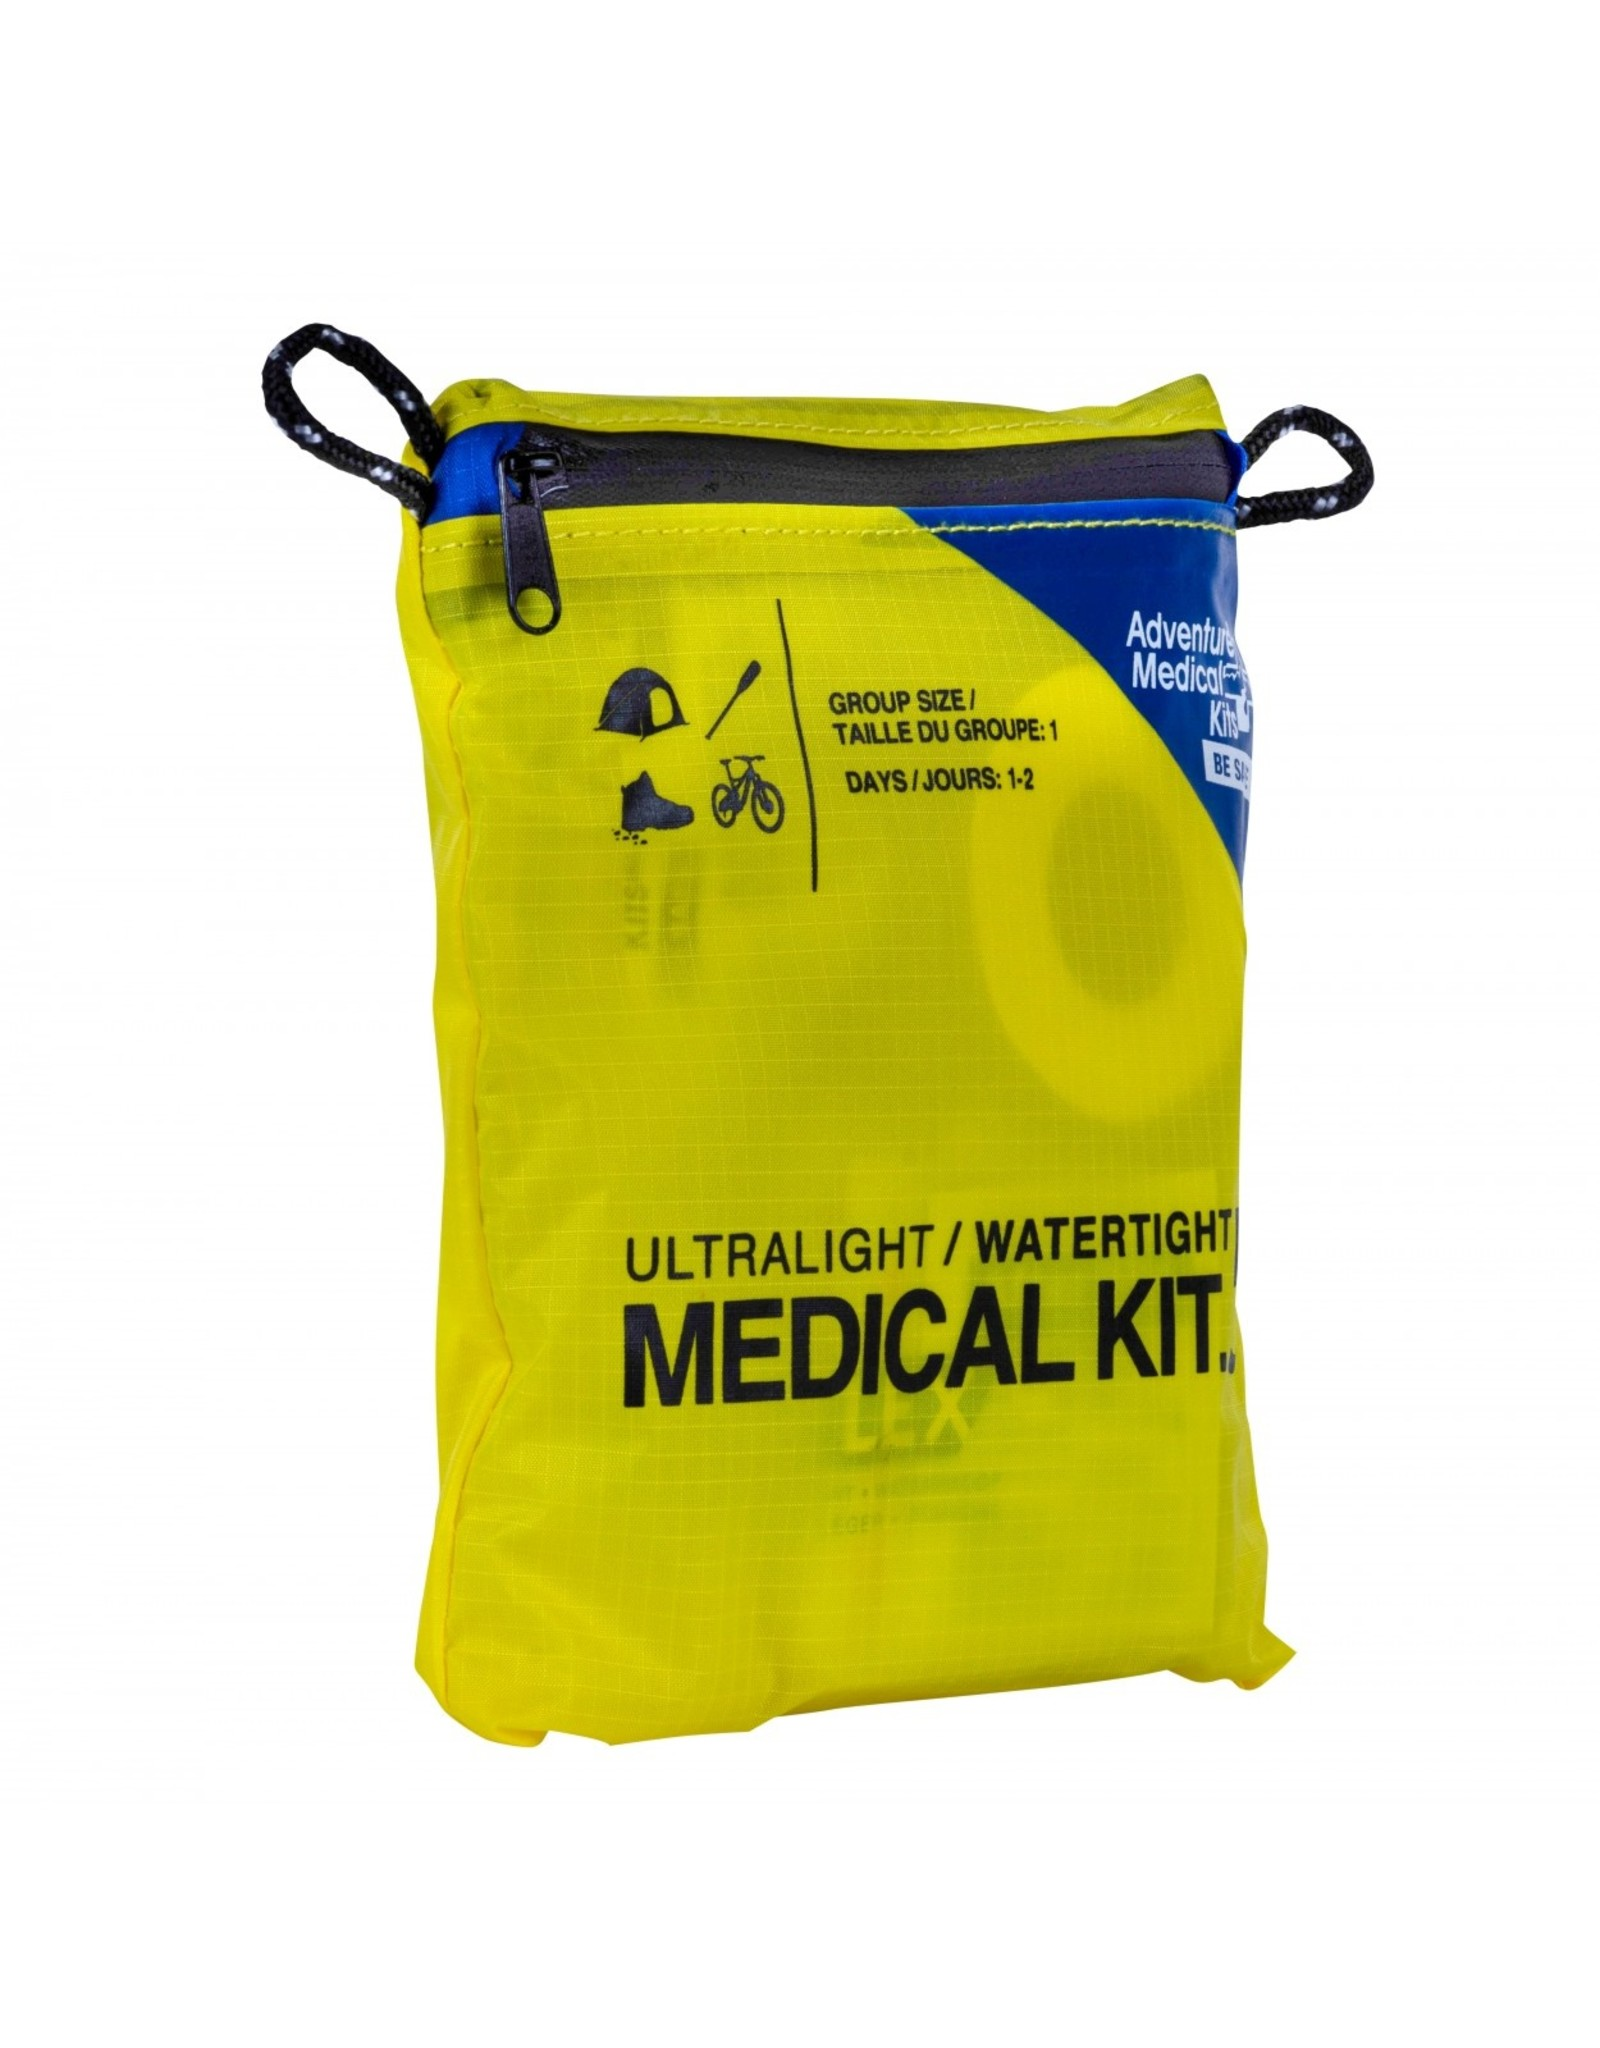 TENDER CORPORATION ADVENTURE MEDICAL KITS ULTRALIGHT MED KIT.5